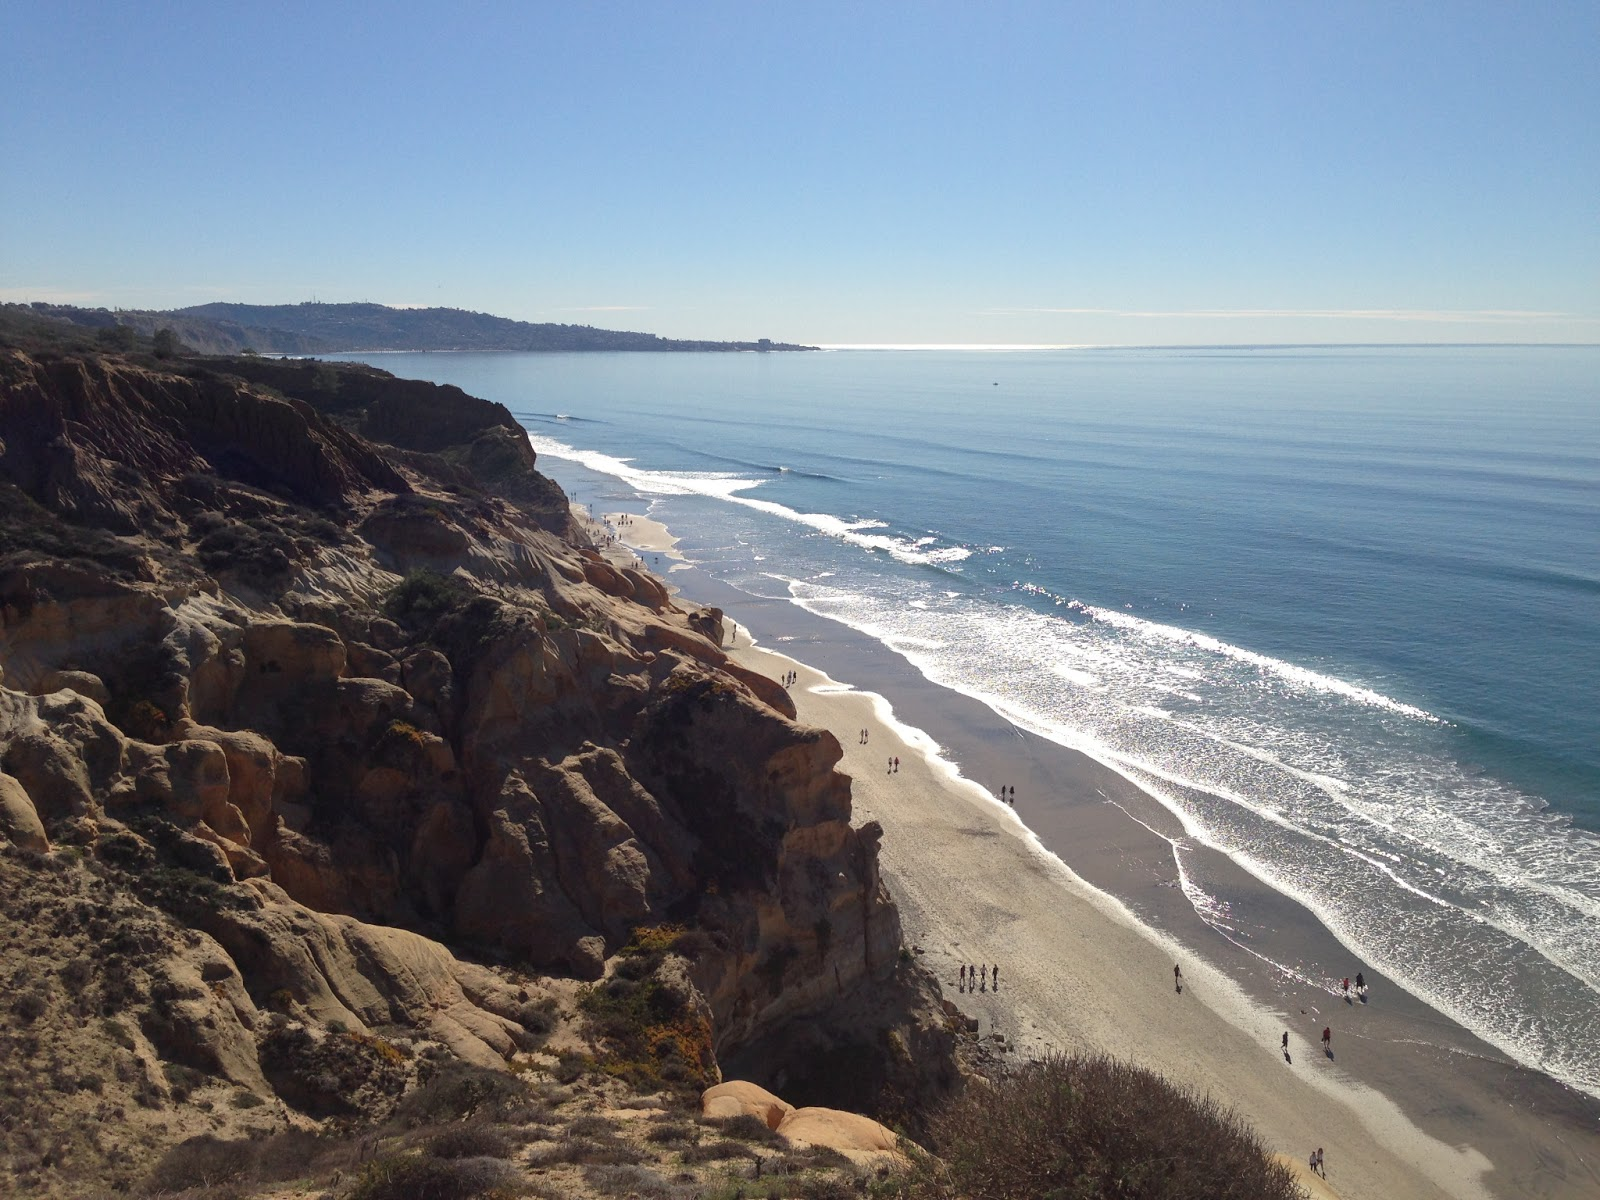 Can Dogs Hike At Torrey Pines